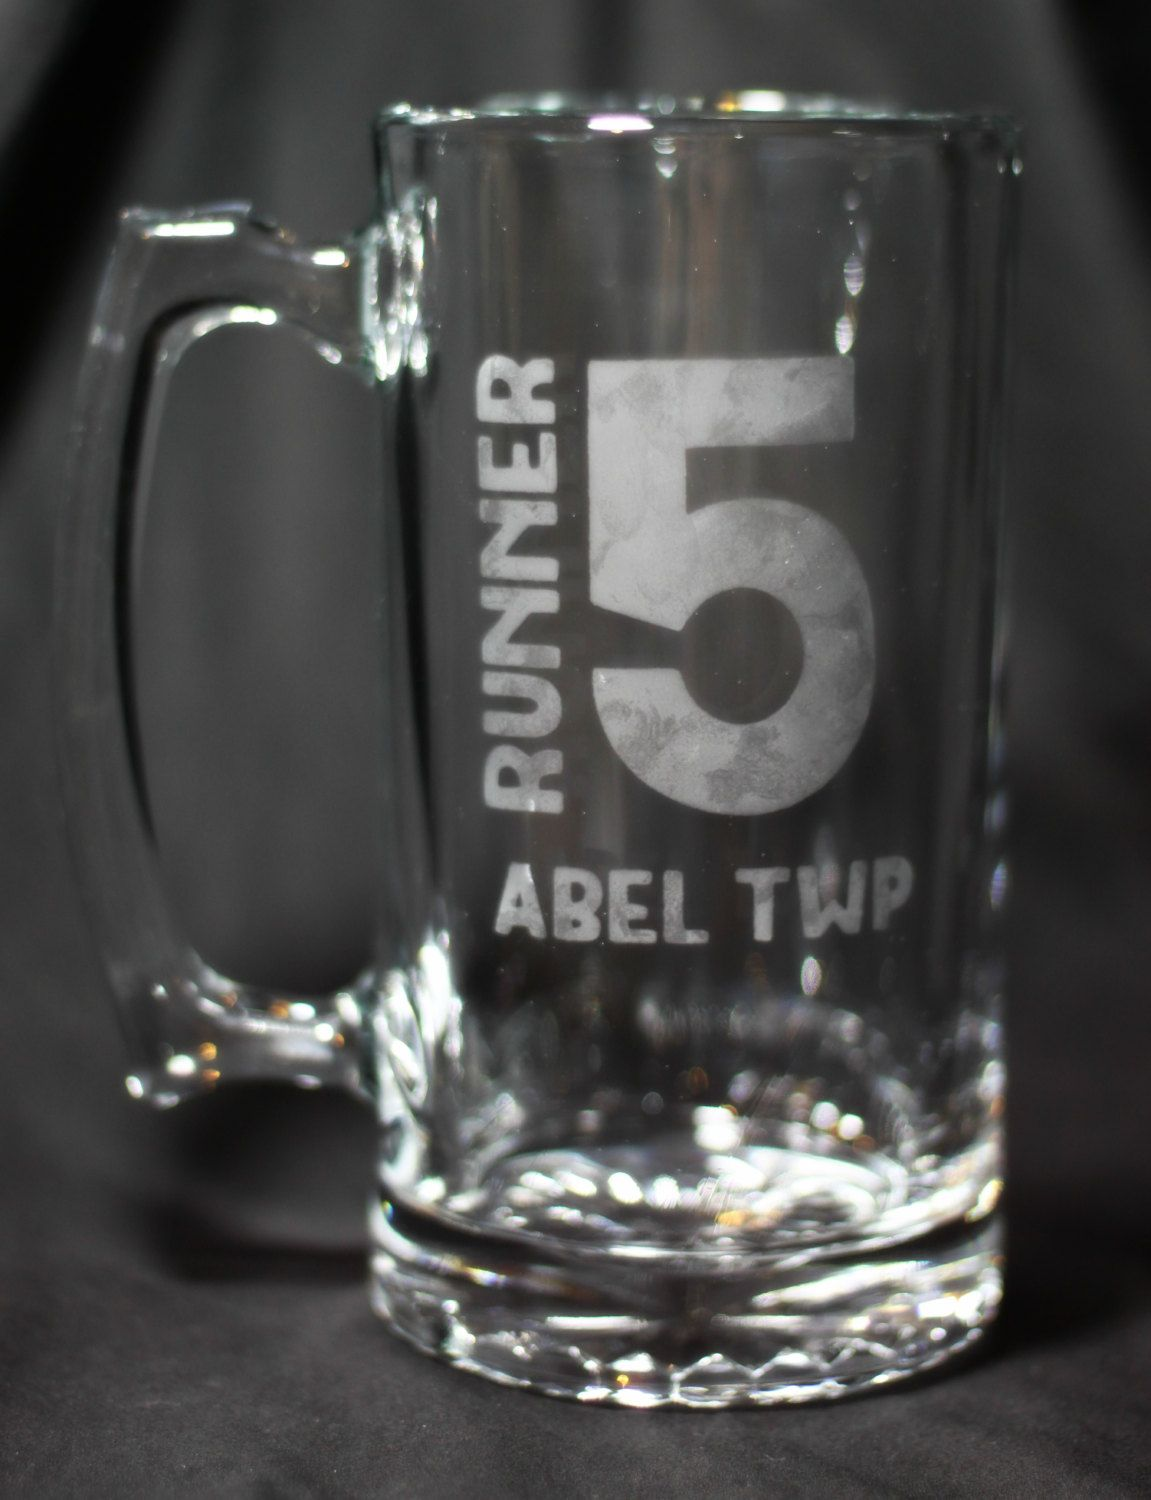 Runner 5 (Zombies, Run!) 20oz Hand Etched Beer Mug by